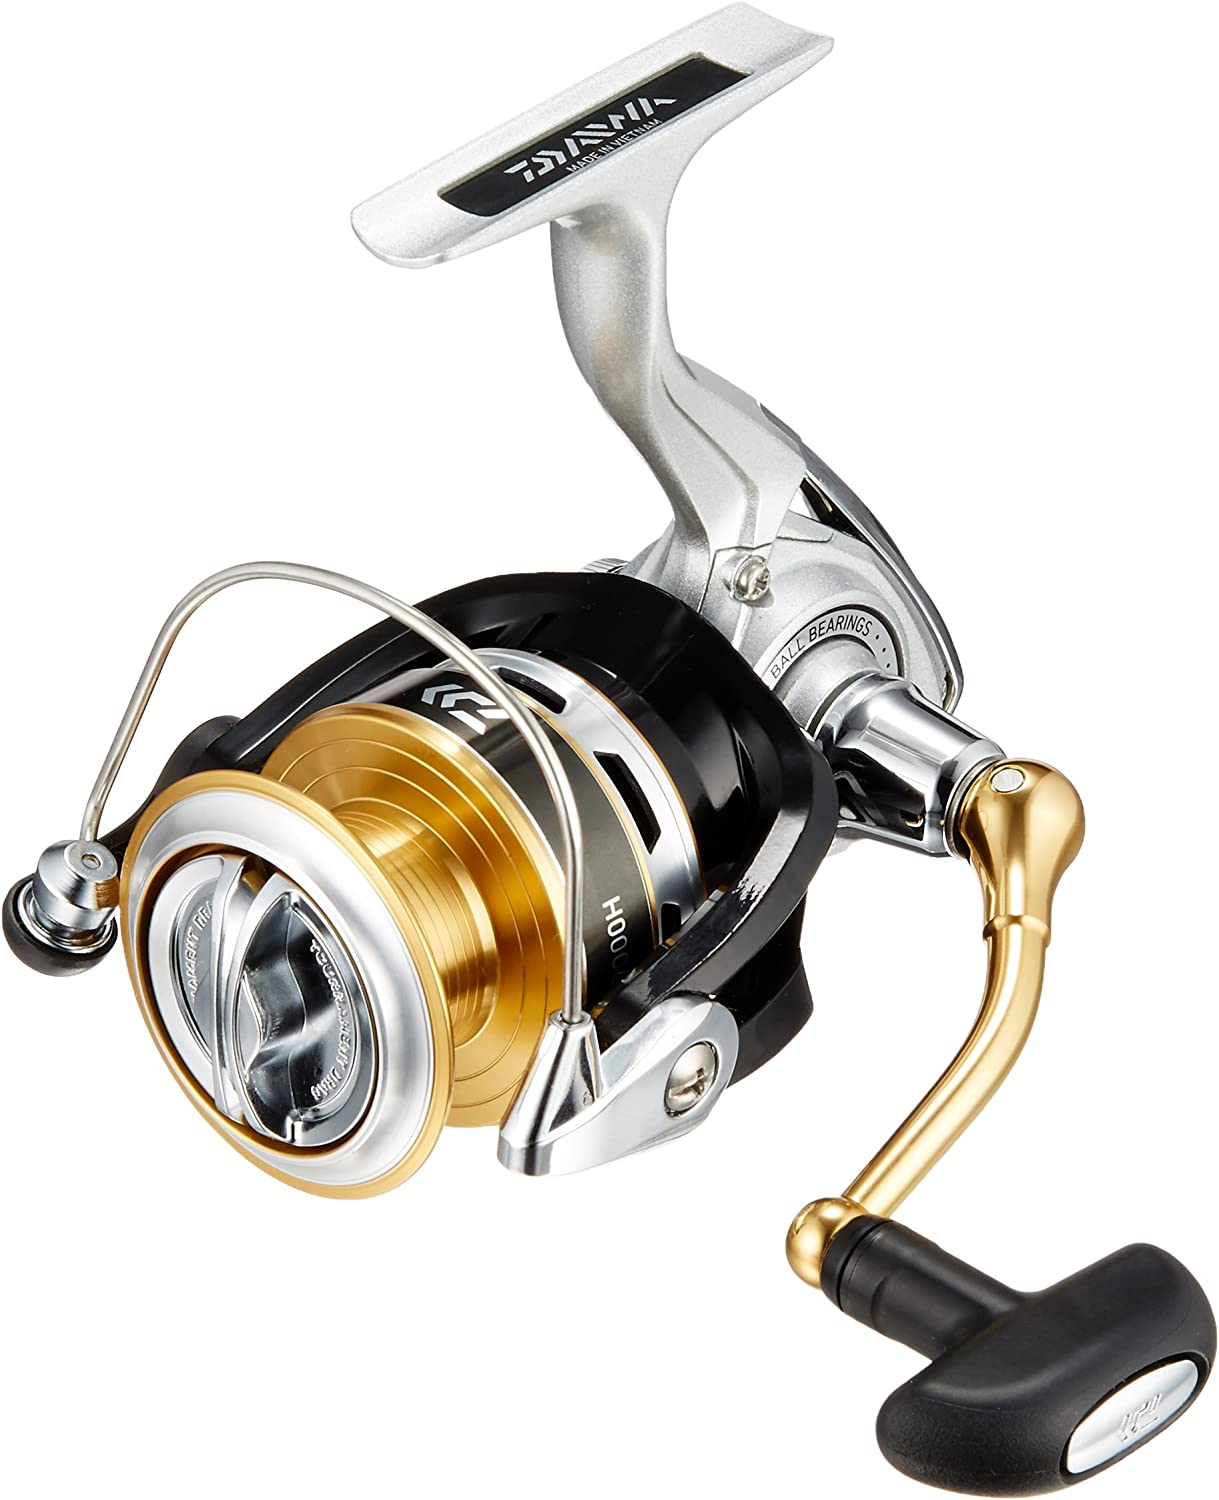 Daiwa Financial sales sale Max 52% OFF 16 CREST 3000H Reel Import Spinning Japan